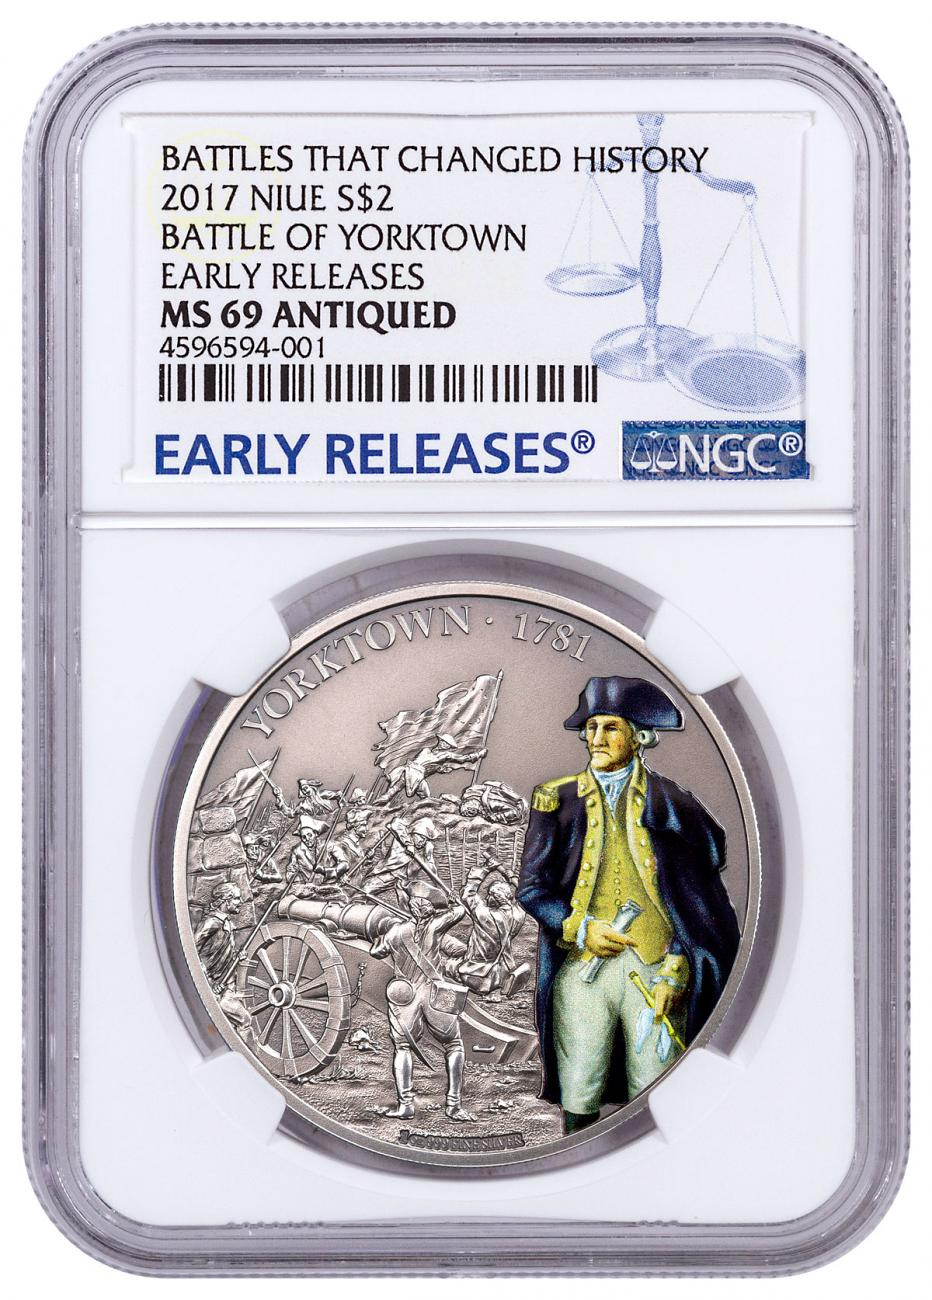 2017 Niue Battles That Changed History - Battle of Yorktown 1 oz Silver Antiqued $2 Coin NGC MS69 ER